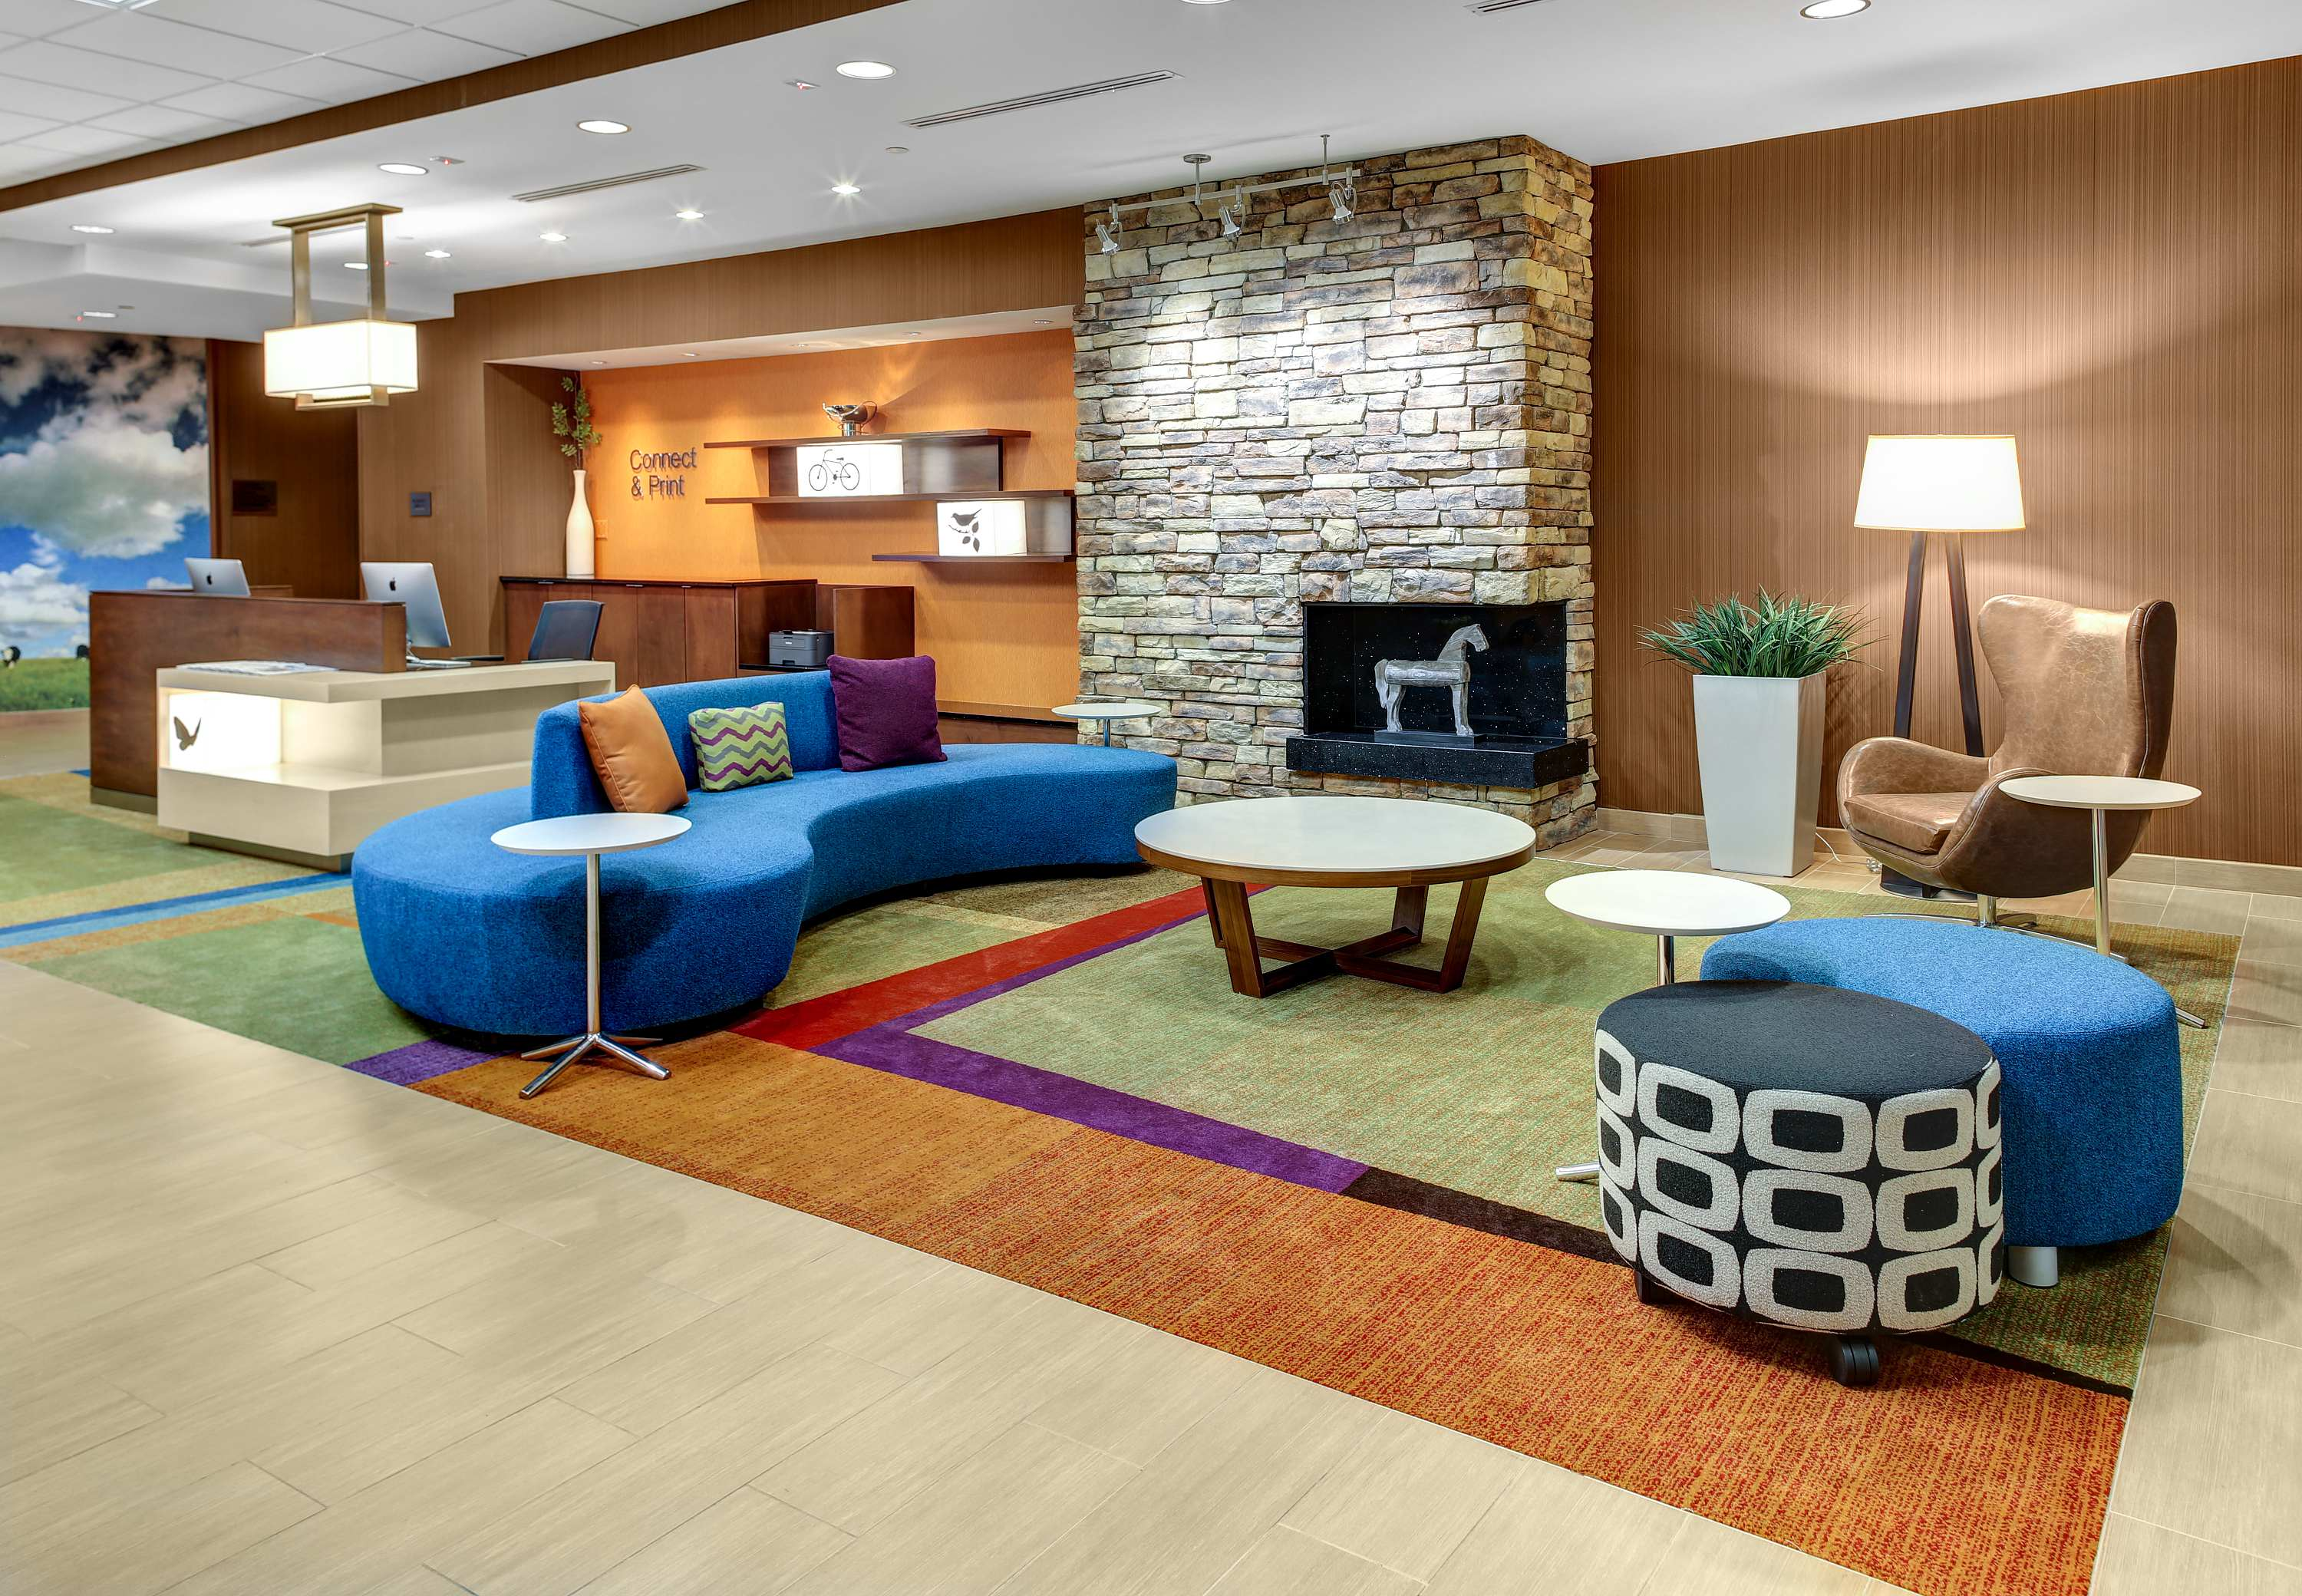 Fairfield Inn & Suites by Marriott Atlanta Stockbridge image 0